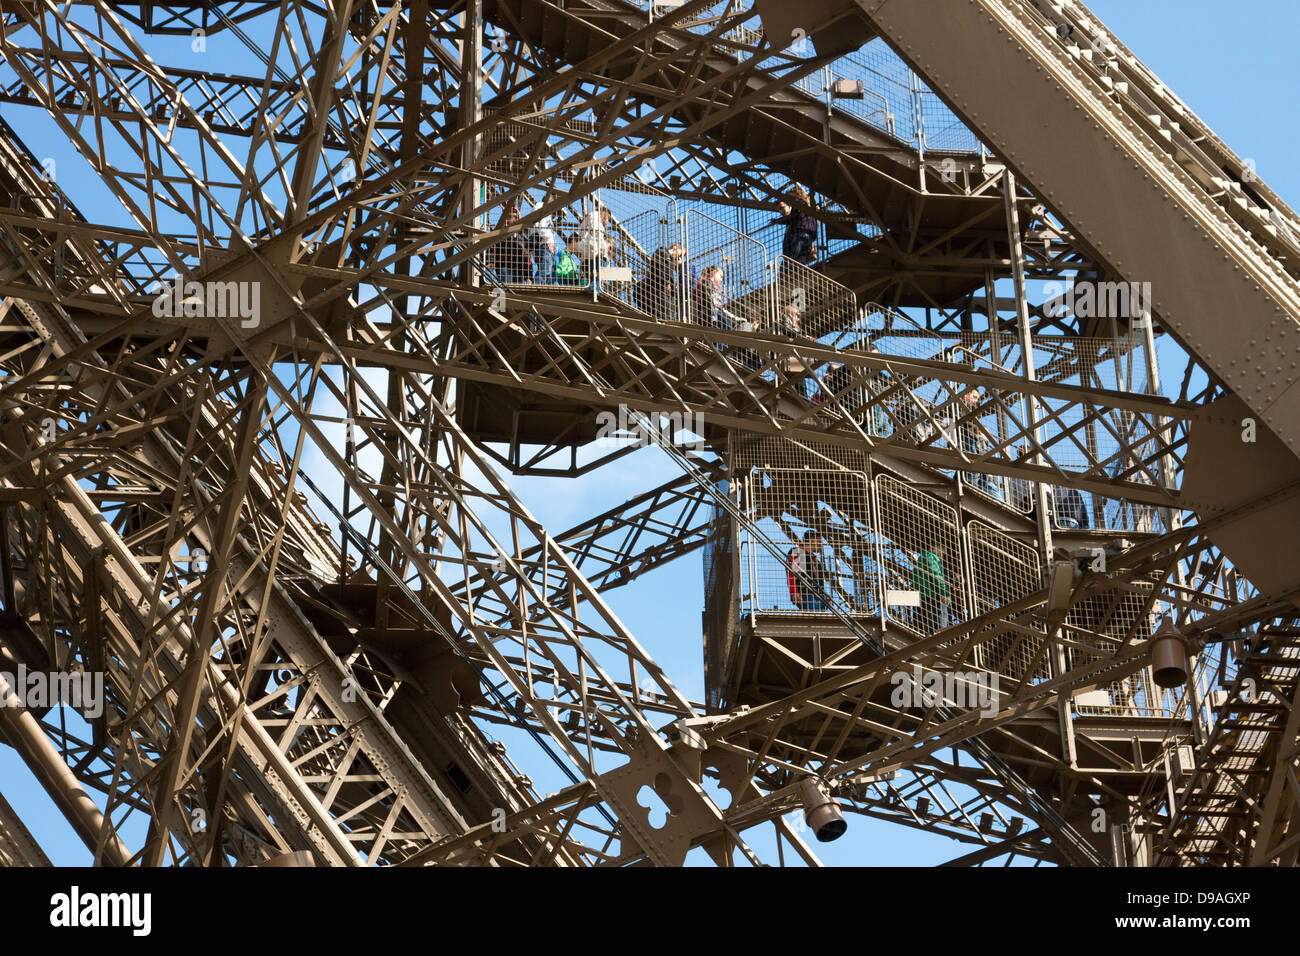 Tourists walking down steps through complex lattice iron girders to descend from first level of Eiffel Tower in - Stock Image